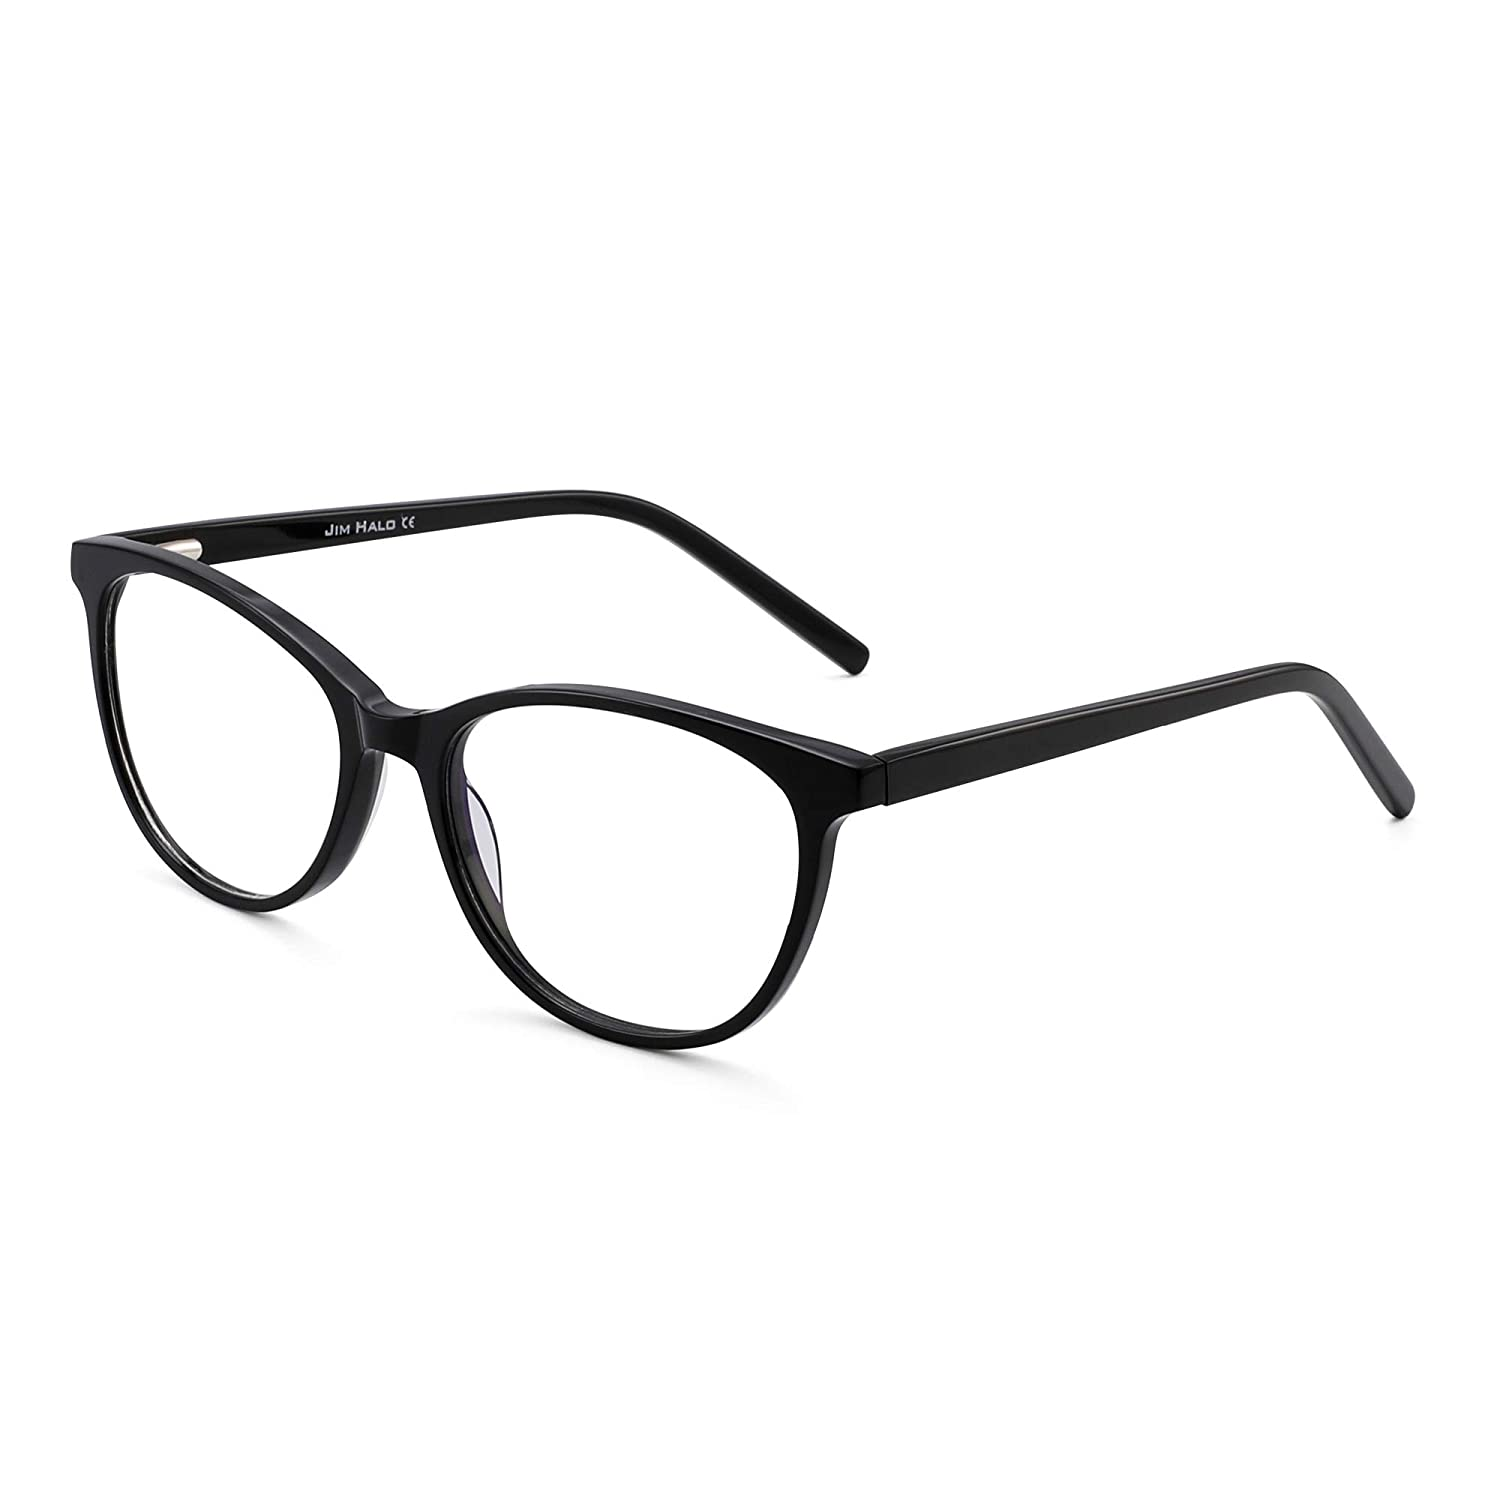 JIM HALO Blue Light Blocking Computer Glasses Spring Hinge Video Gaming Eyeglasses Reduce Eye Fatigue